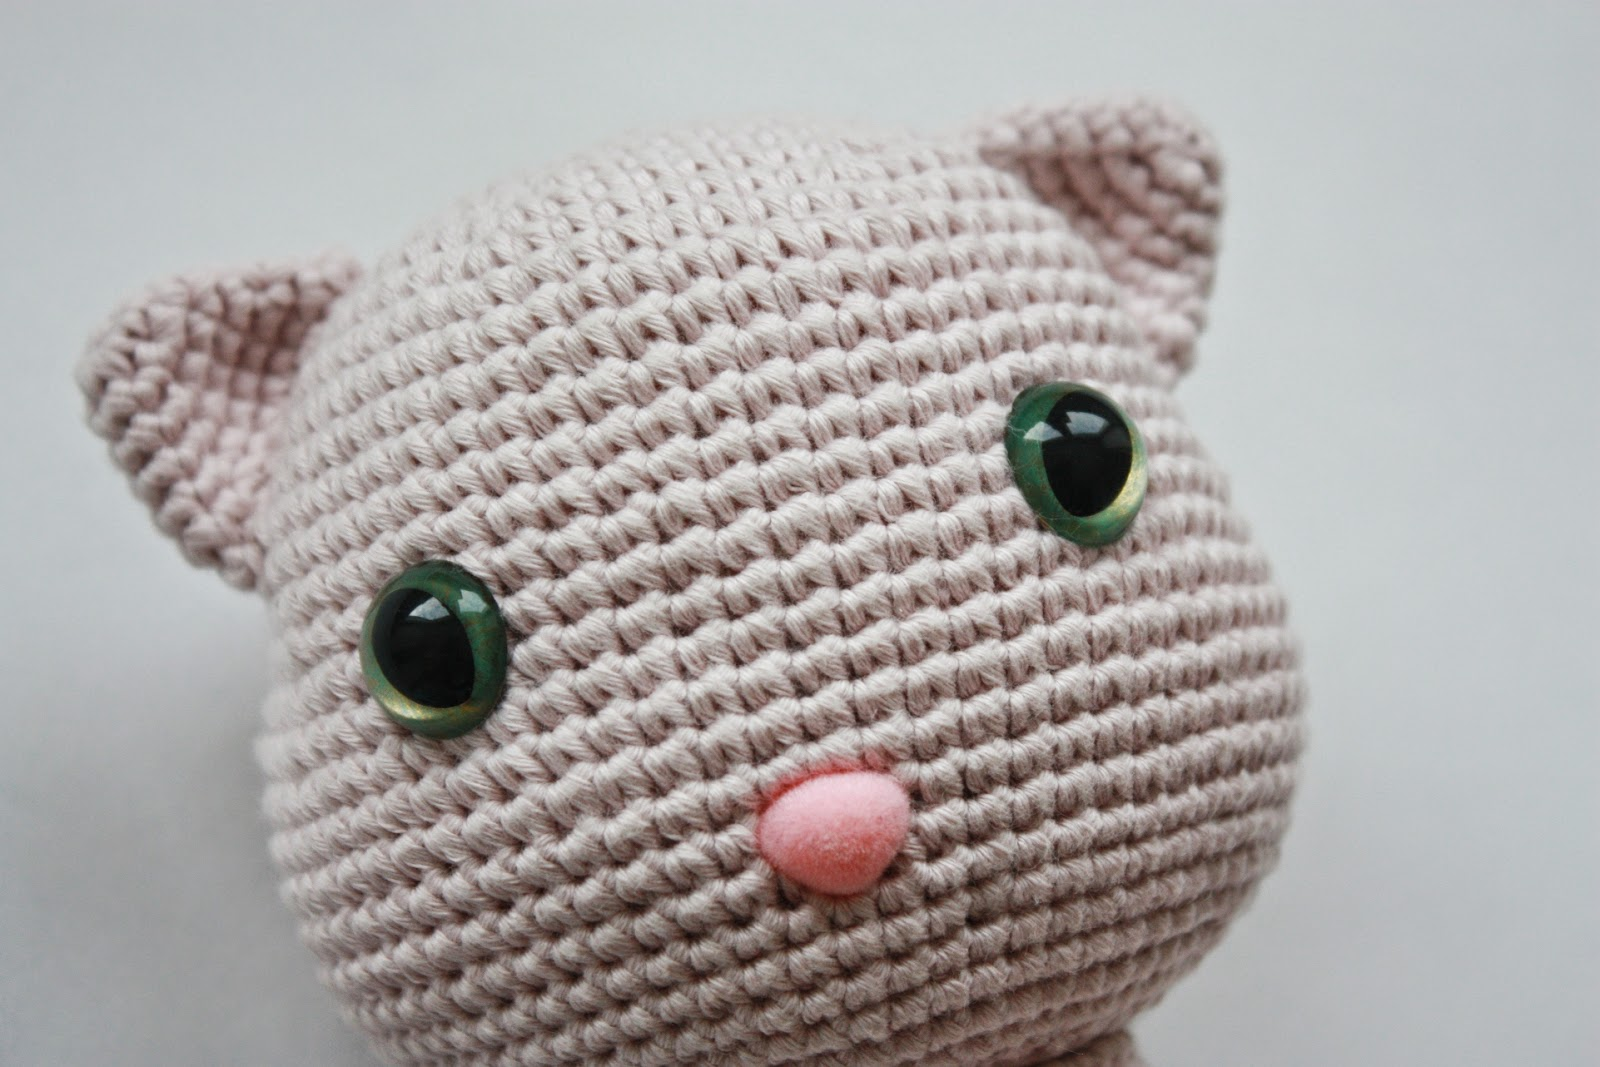 HAPPYAMIGURUMI: A New Pattern out now: Amigurumi Cat Pattern